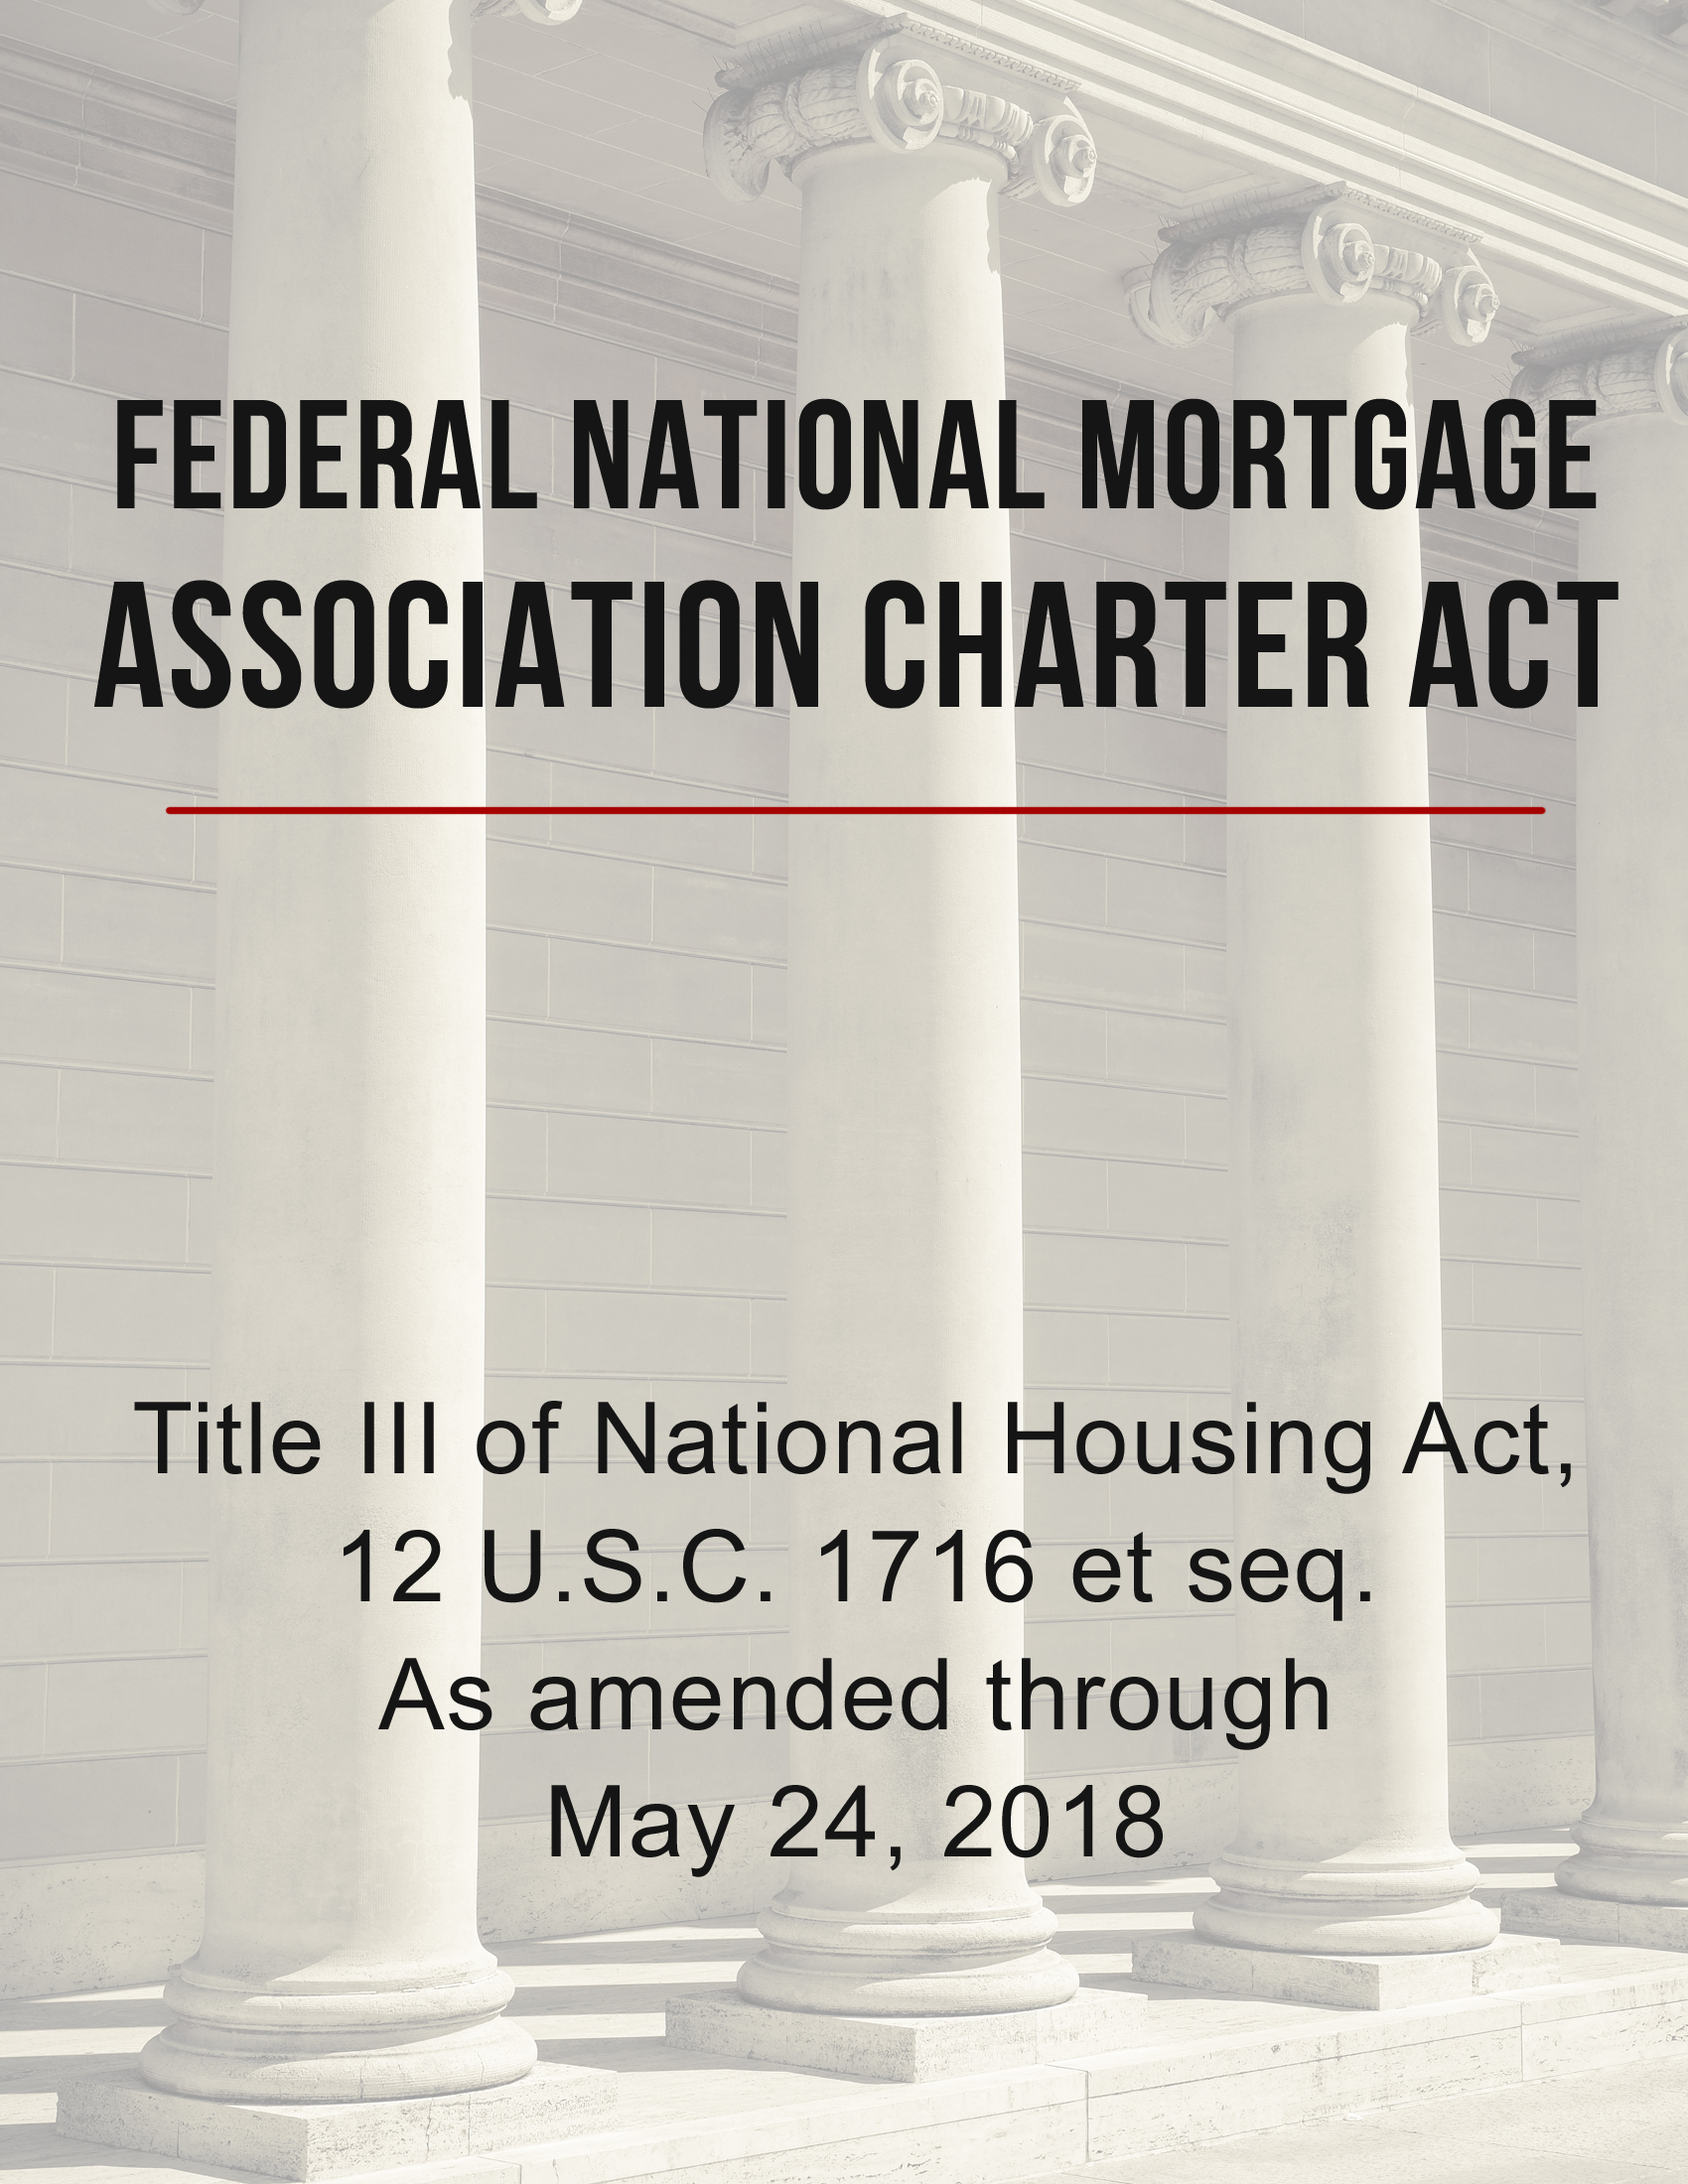 Federal National Mortgage Association Charter Act